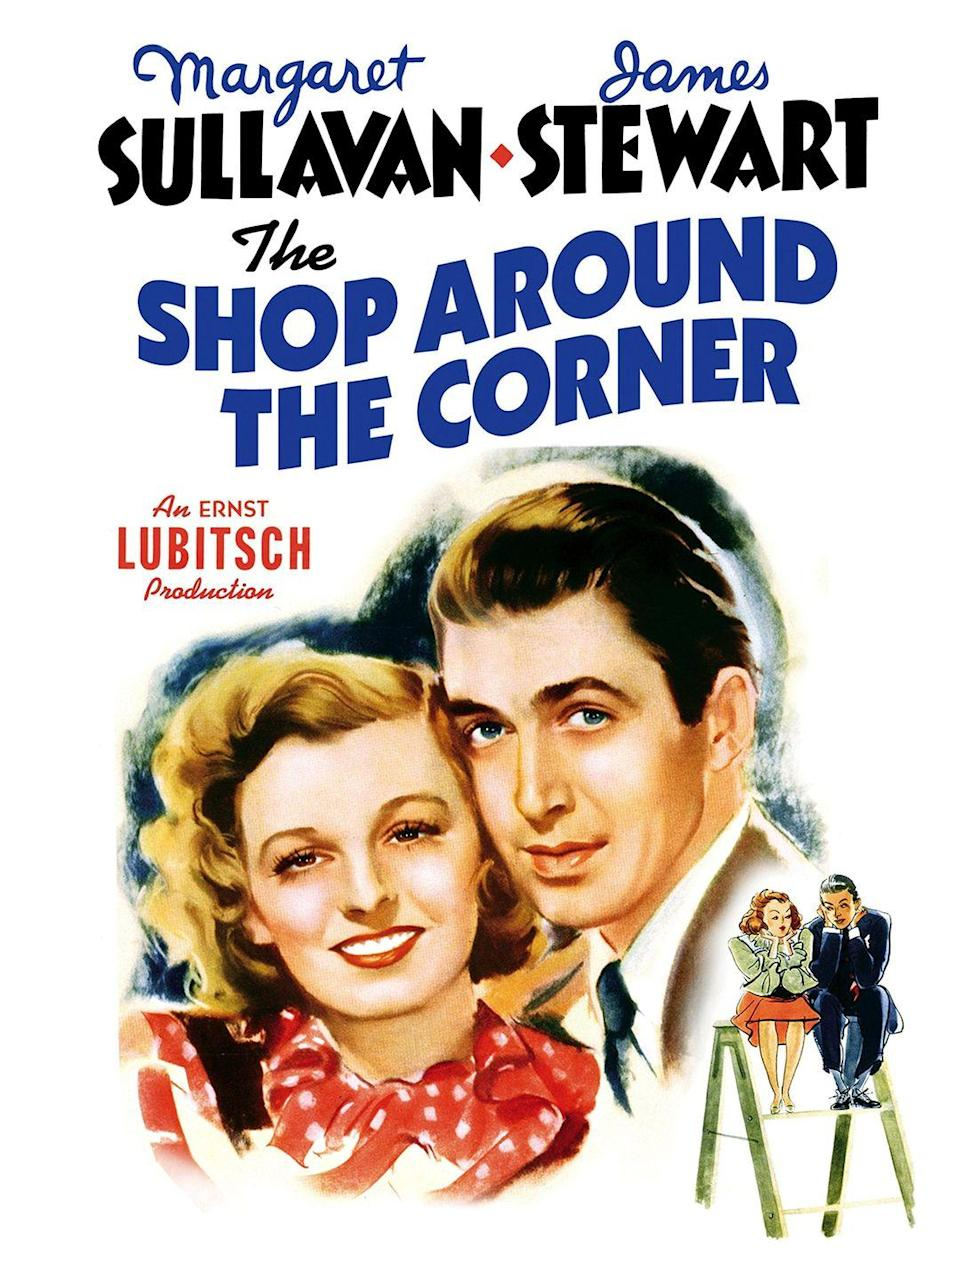 """<p>The plot of this 1940 black-and-white Christmas film is pretty much the same as <em>You've Got Mail </em>— just swap emails for letters and Tom Hanks for Jimmy Stewart, and there you have it.</p><p><a class=""""link rapid-noclick-resp"""" href=""""https://www.amazon.com/Shop-Around-Corner-James-Stewart/dp/B004GAKENI/?tag=syn-yahoo-20&ascsubtag=%5Bartid%7C10055.g.1315%5Bsrc%7Cyahoo-us"""" rel=""""nofollow noopener"""" target=""""_blank"""" data-ylk=""""slk:WATCH NOW"""">WATCH NOW</a></p><p><strong>RELATED: </strong><a href=""""https://www.goodhousekeeping.com/holidays/christmas-ideas/g30171690/forgotten-christmas-movies/"""" rel=""""nofollow noopener"""" target=""""_blank"""" data-ylk=""""slk:40 Forgotten Christmas Movies You Should Watch Right Now"""" class=""""link rapid-noclick-resp"""">40 Forgotten Christmas Movies You Should Watch Right Now</a></p>"""